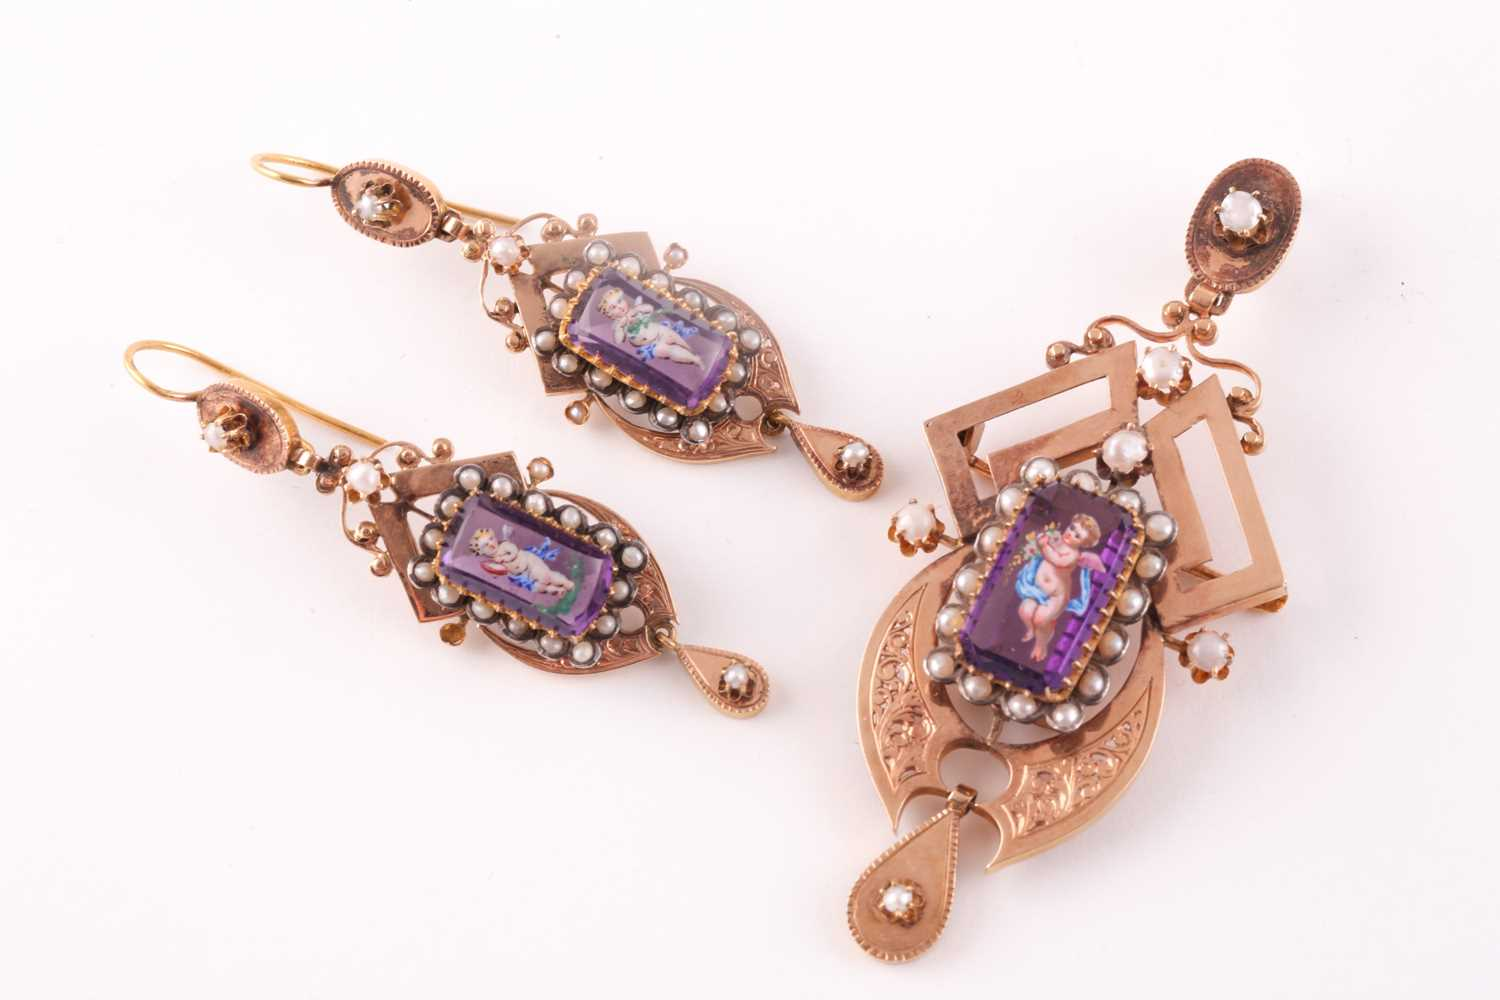 A late 19th century yellow gold French pendant, centred with amethyst glass, polychrome painted with